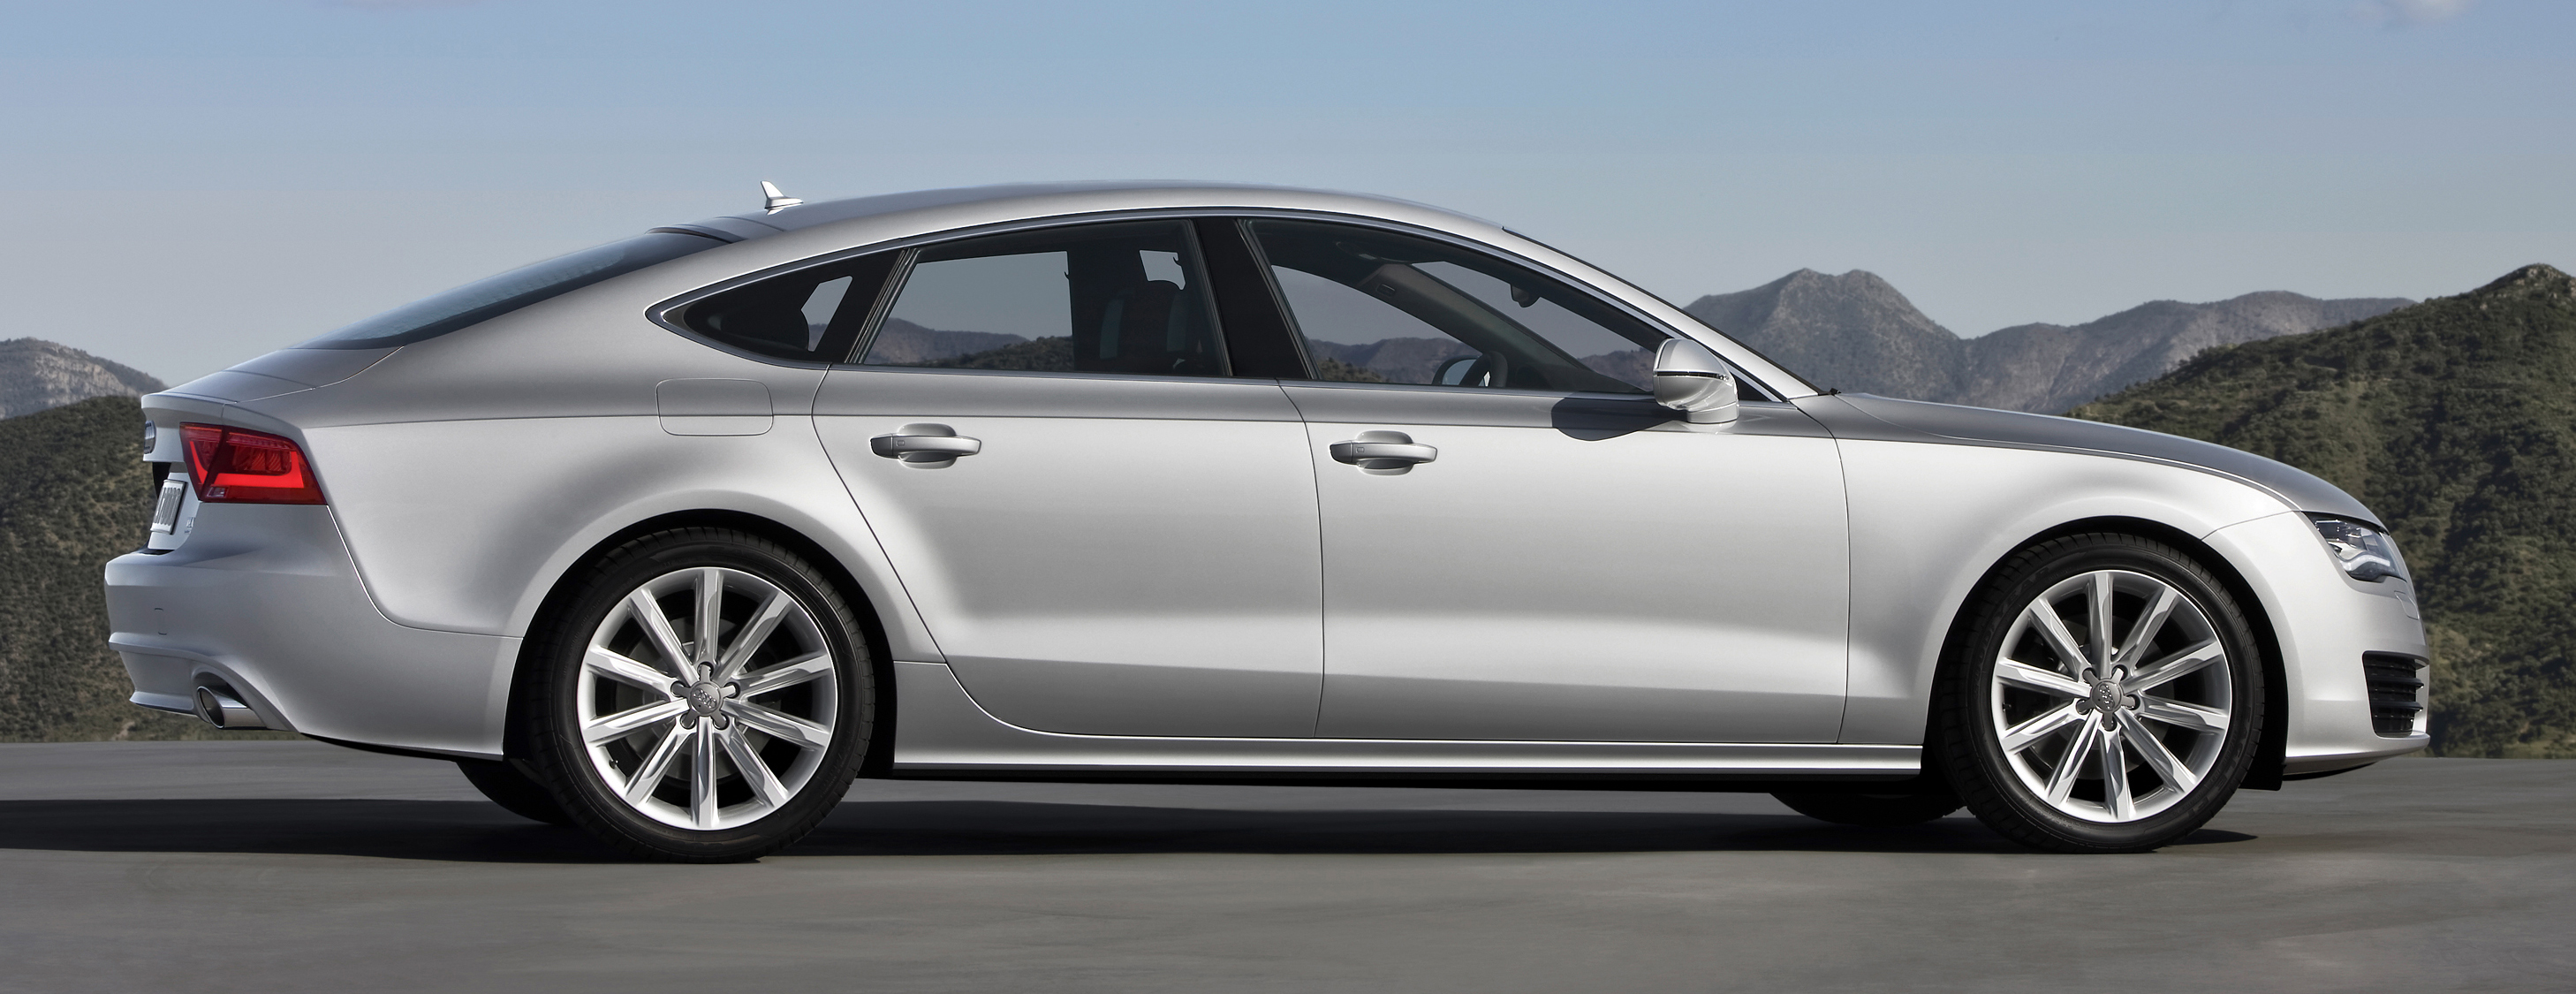 audi a7 3 0 tfsi quattro now in malaysia rm599k image 73875. Black Bedroom Furniture Sets. Home Design Ideas